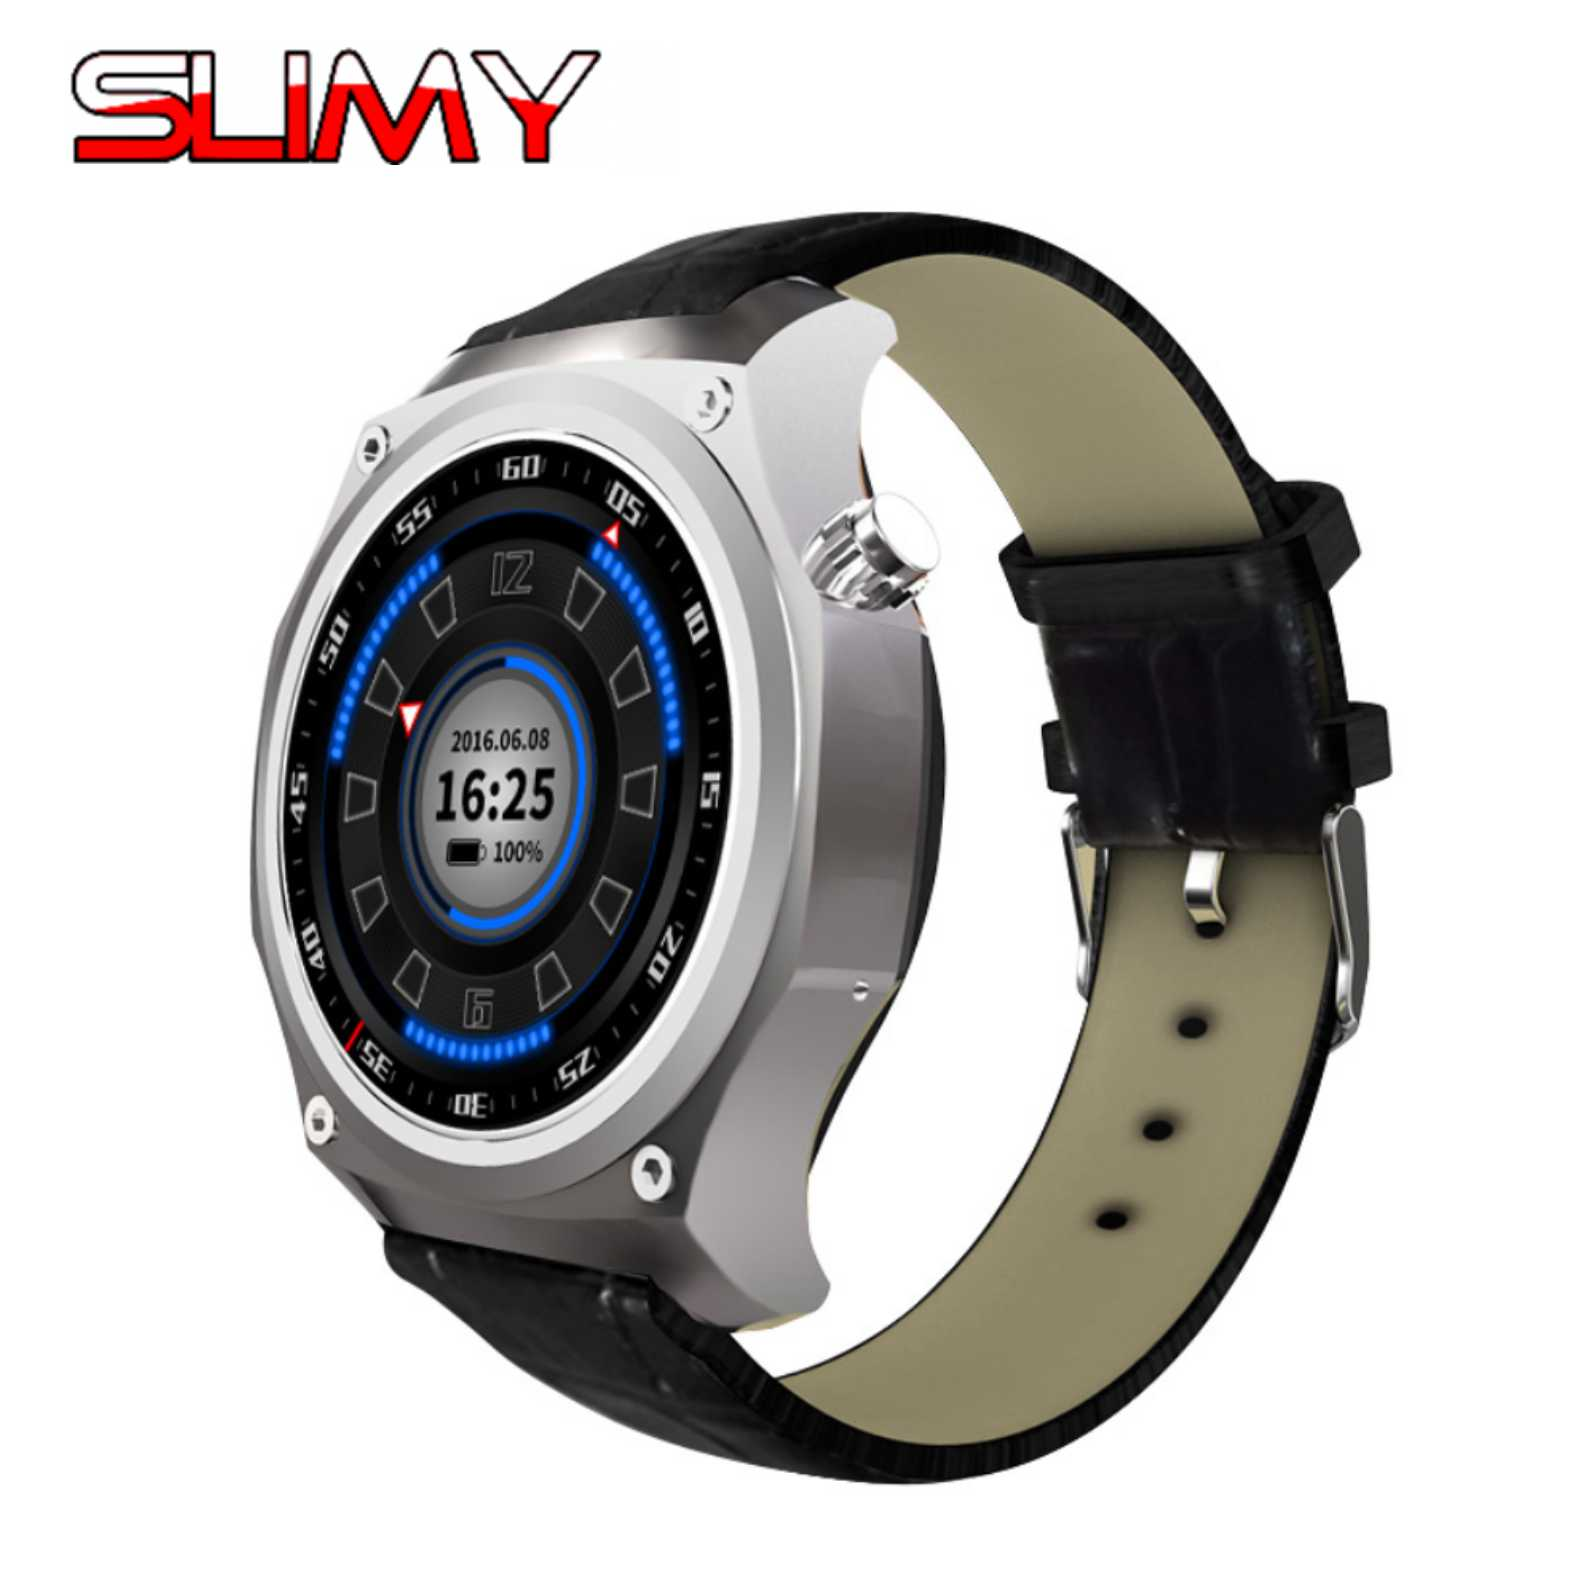 Slimy 3G WIFI GPS Bluetooth Smart Watch Android 5.1 OS MTK6580 1.3 Inch 2.0MP Camera Smartwatch for Iphone Huawei Phone Watch slimy mtk6580 android 5 1 os gps smart watch phone with 5 0 mp camera support wifi 3g sim card smartwatch wristwatch for men